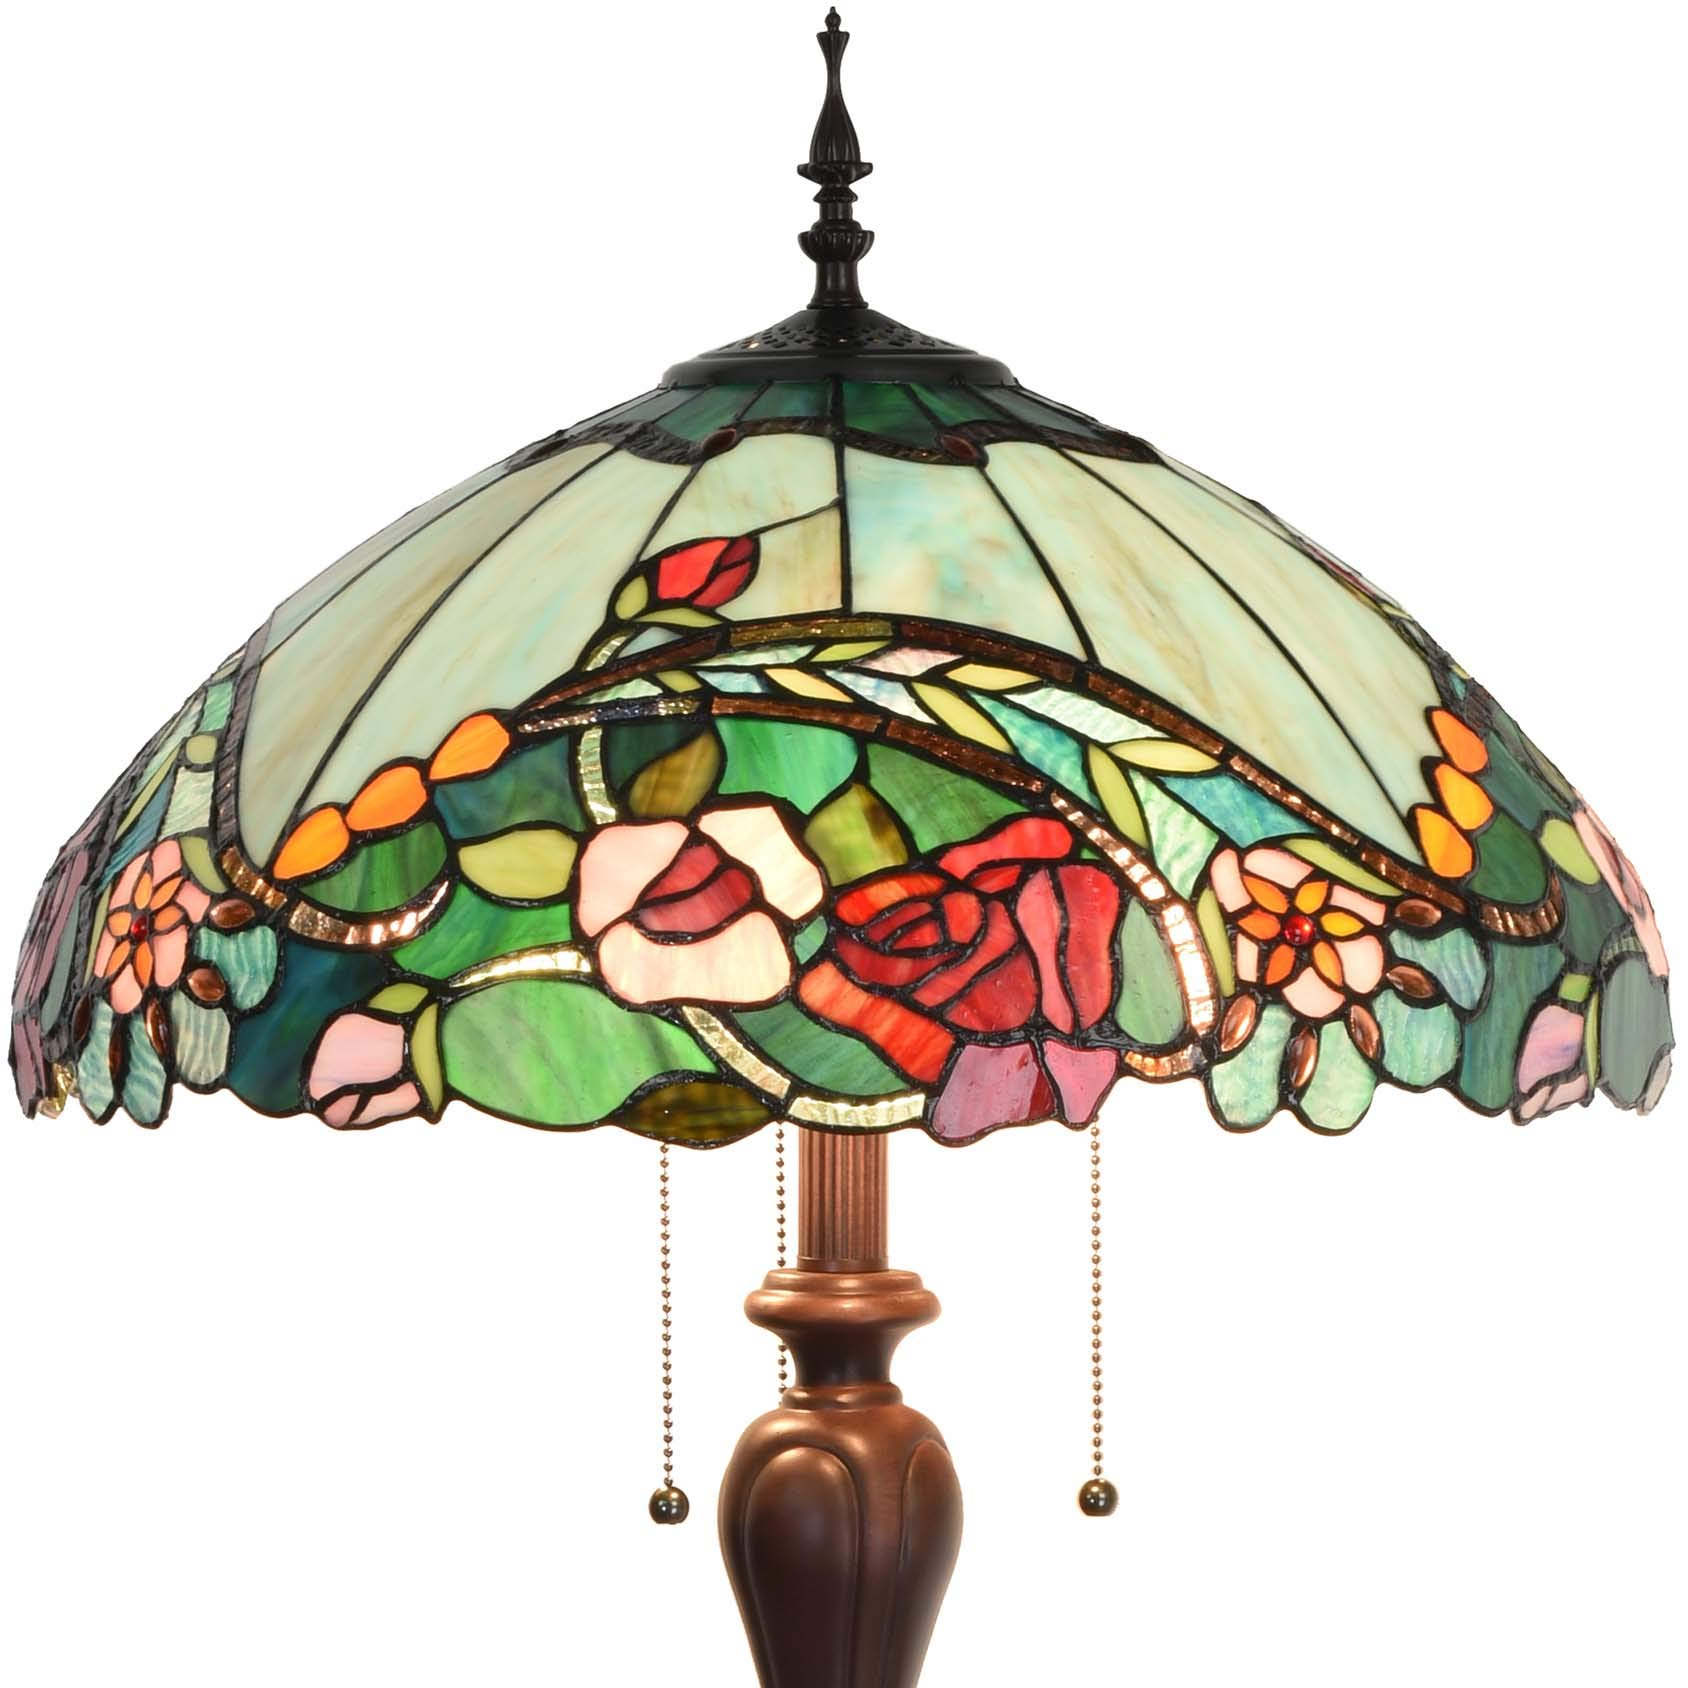 Bieye L10740 Rose Flower Tiffany Style Stained Glass Floor Lamp with 18-inch Wide Shade for Reading Working Bedroom, 3 Lights, 65 inch Tall